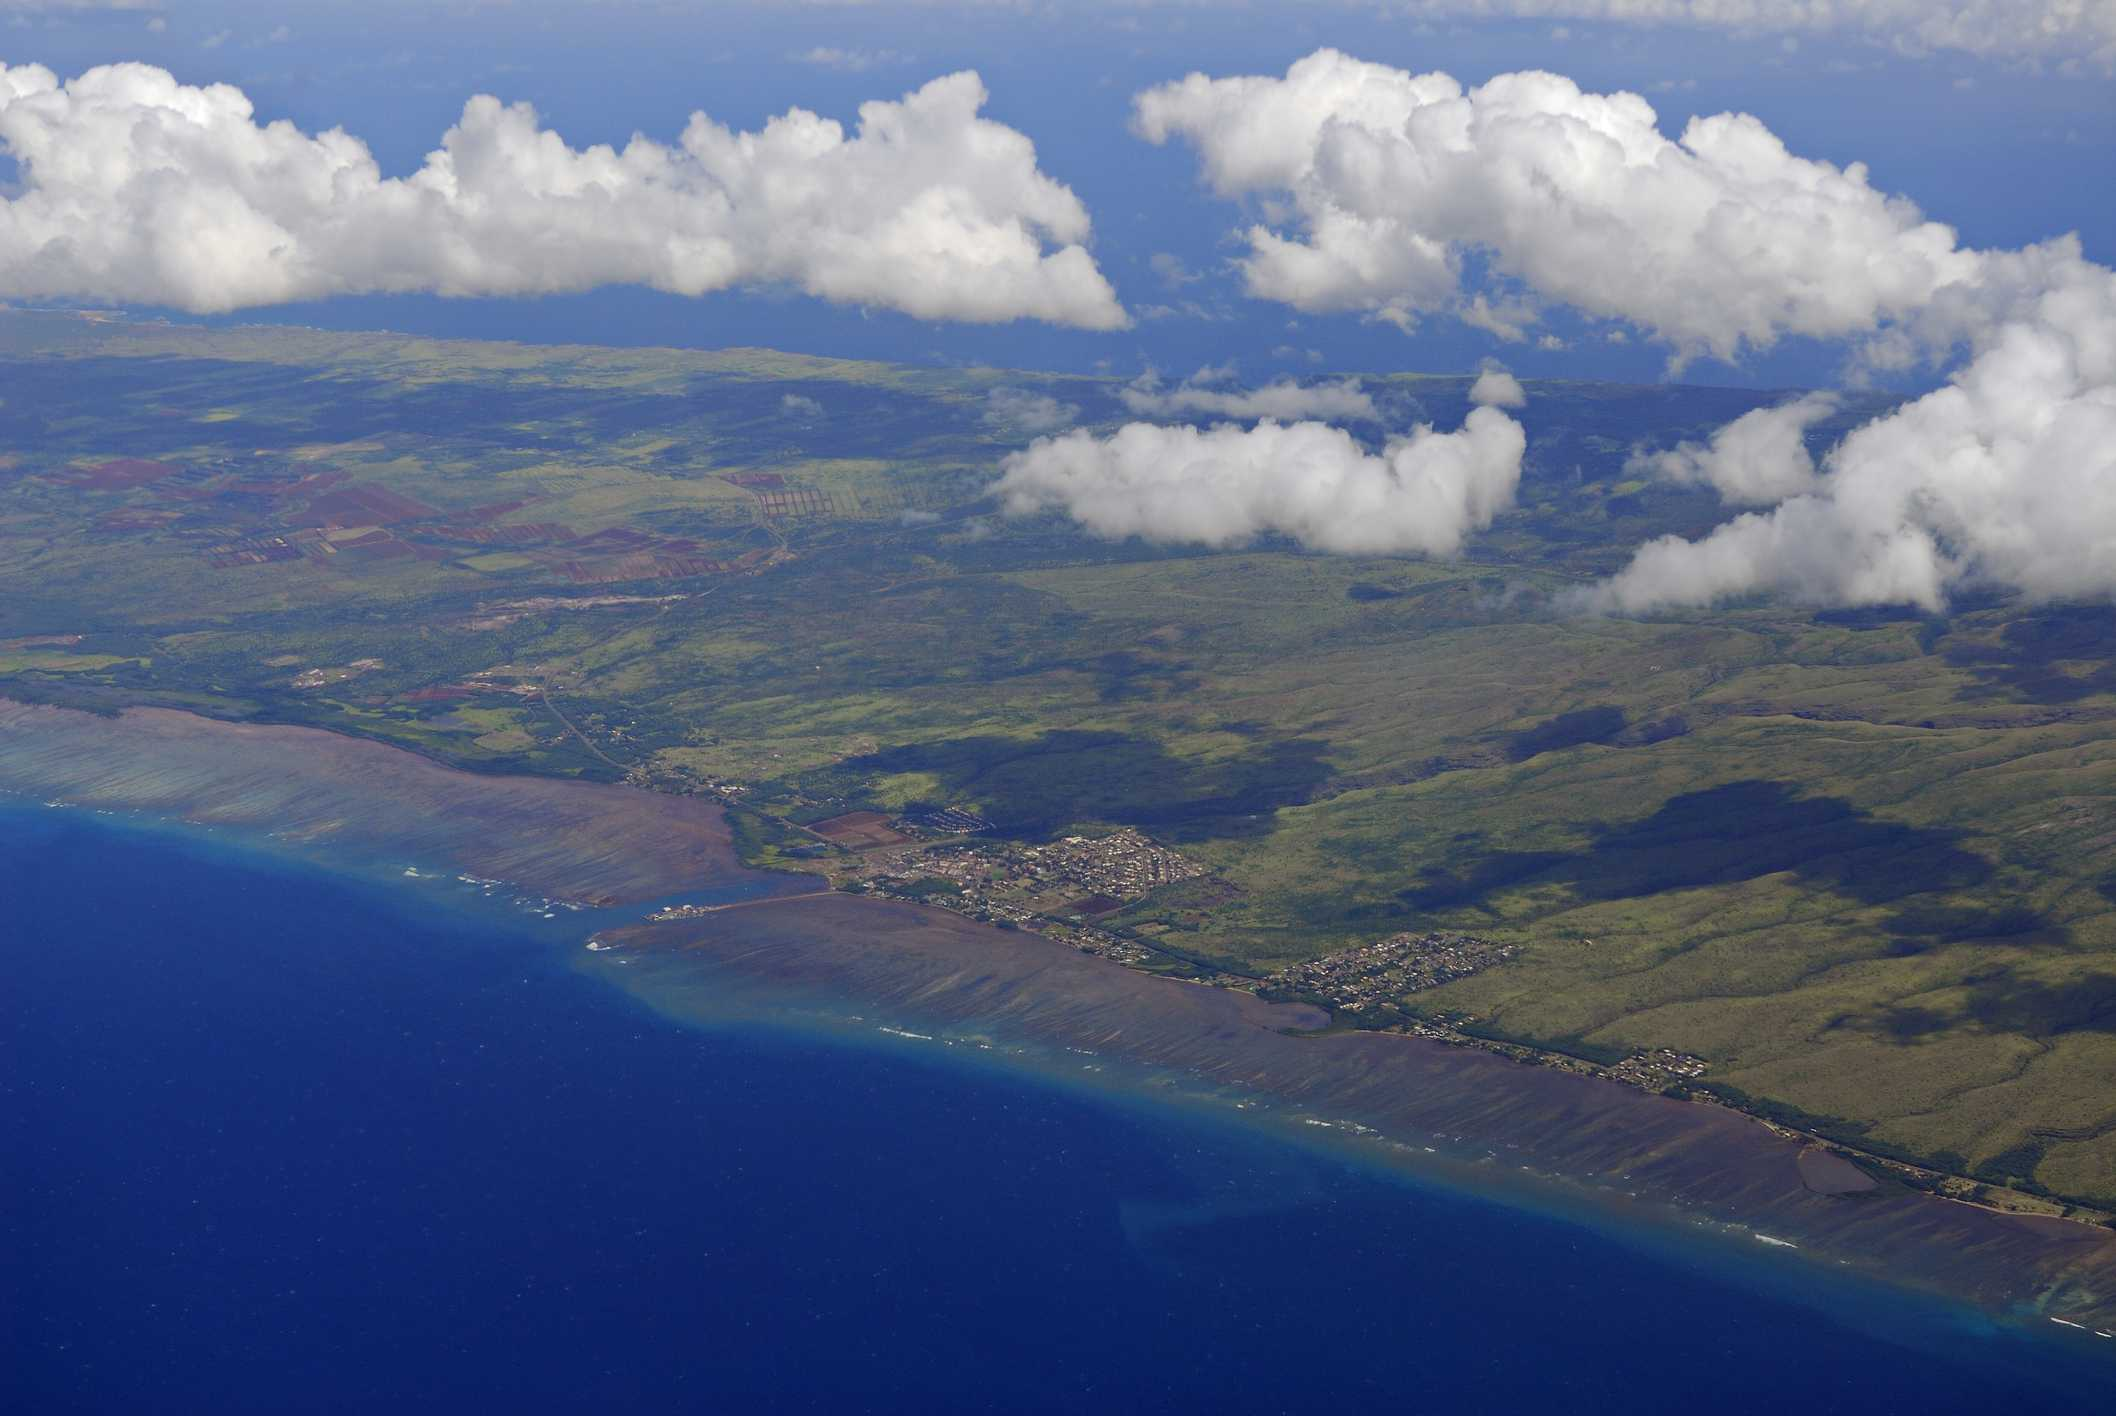 Moloka'i coffee plantation as seen from high above